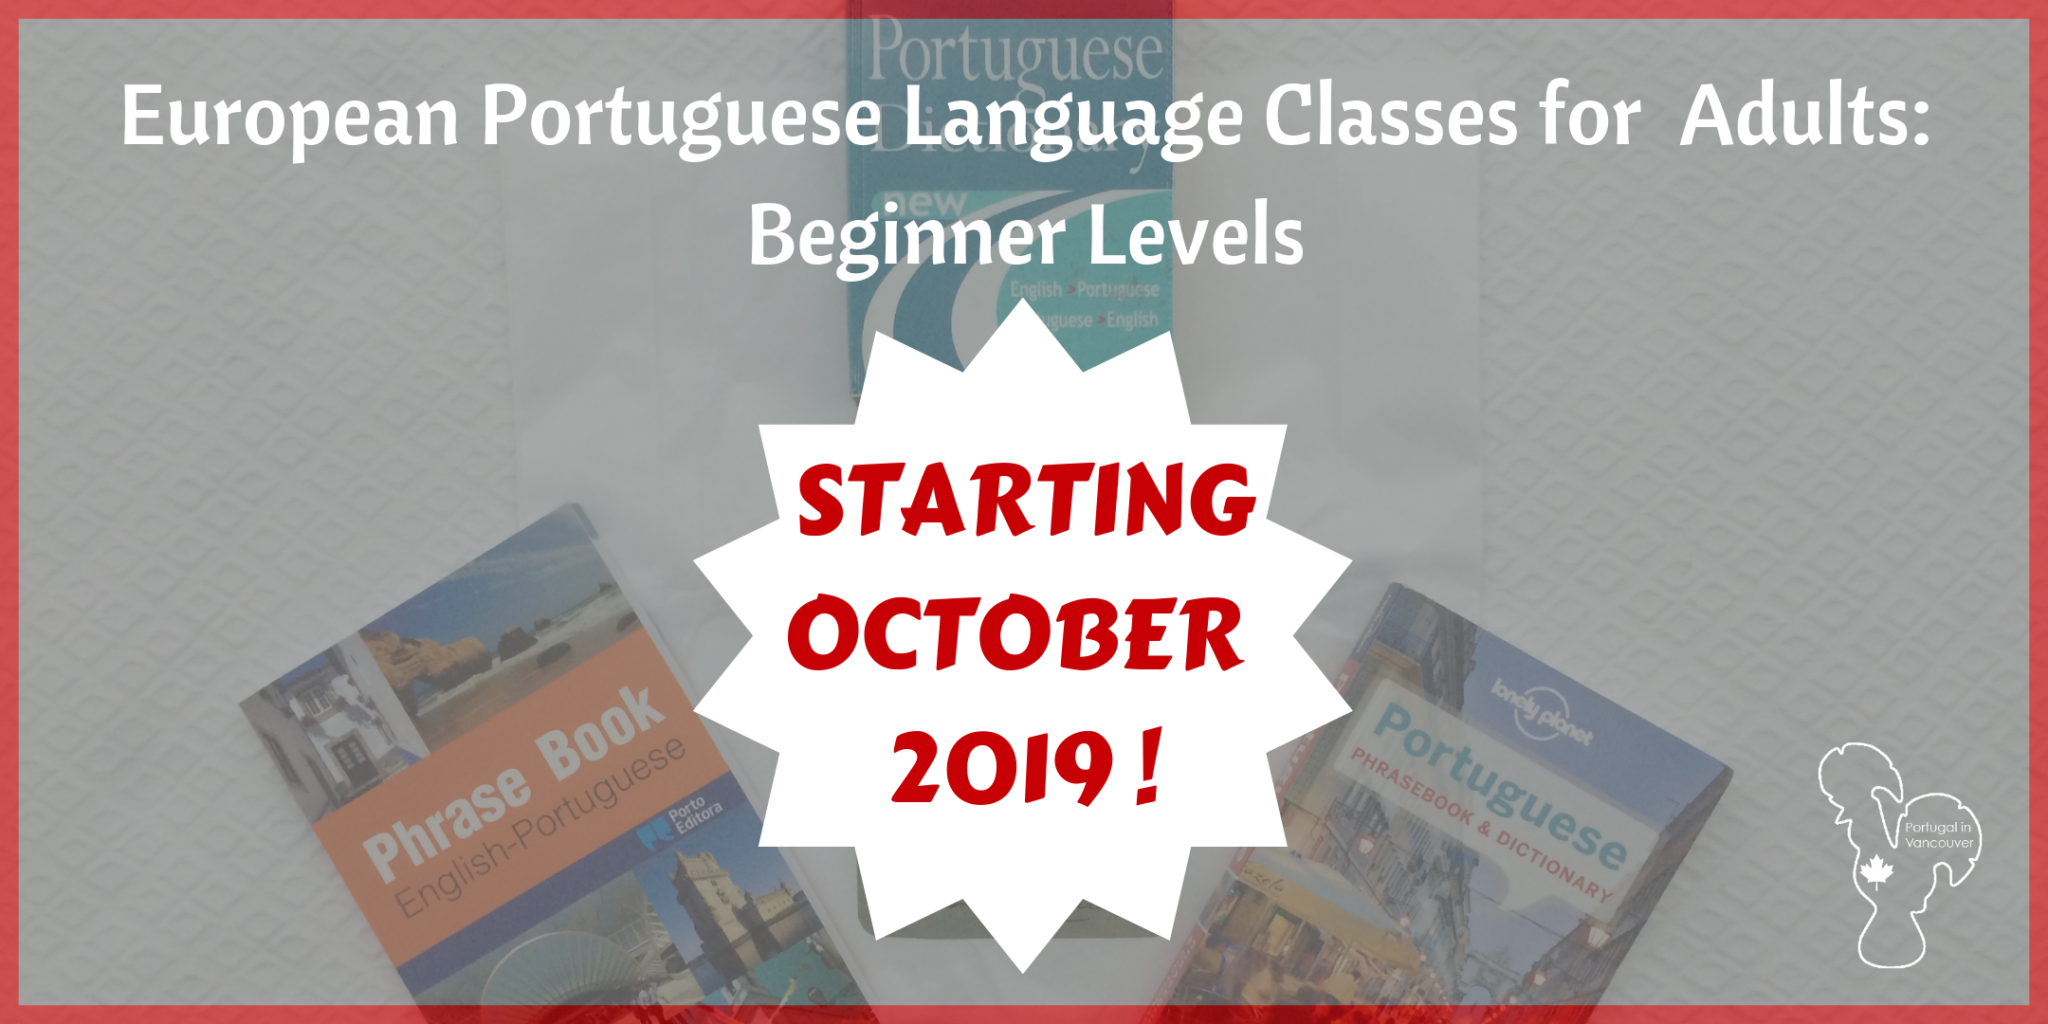 European Portuguese Language Classes for Adults: Beginner Levels